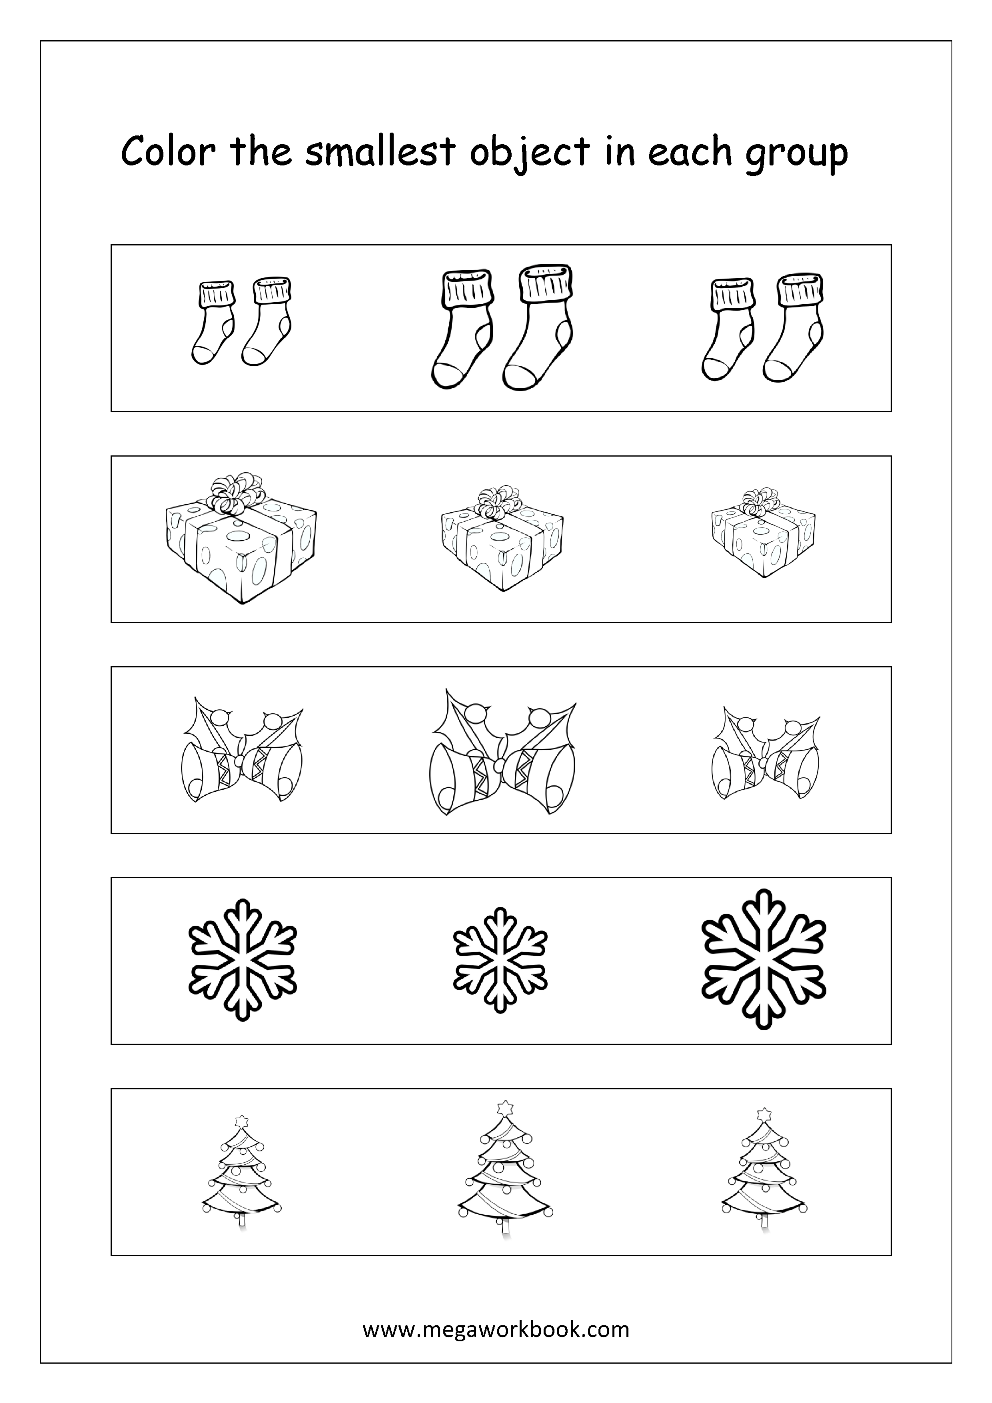 Free Printable Big and Small Worksheets - Size Comparison ...